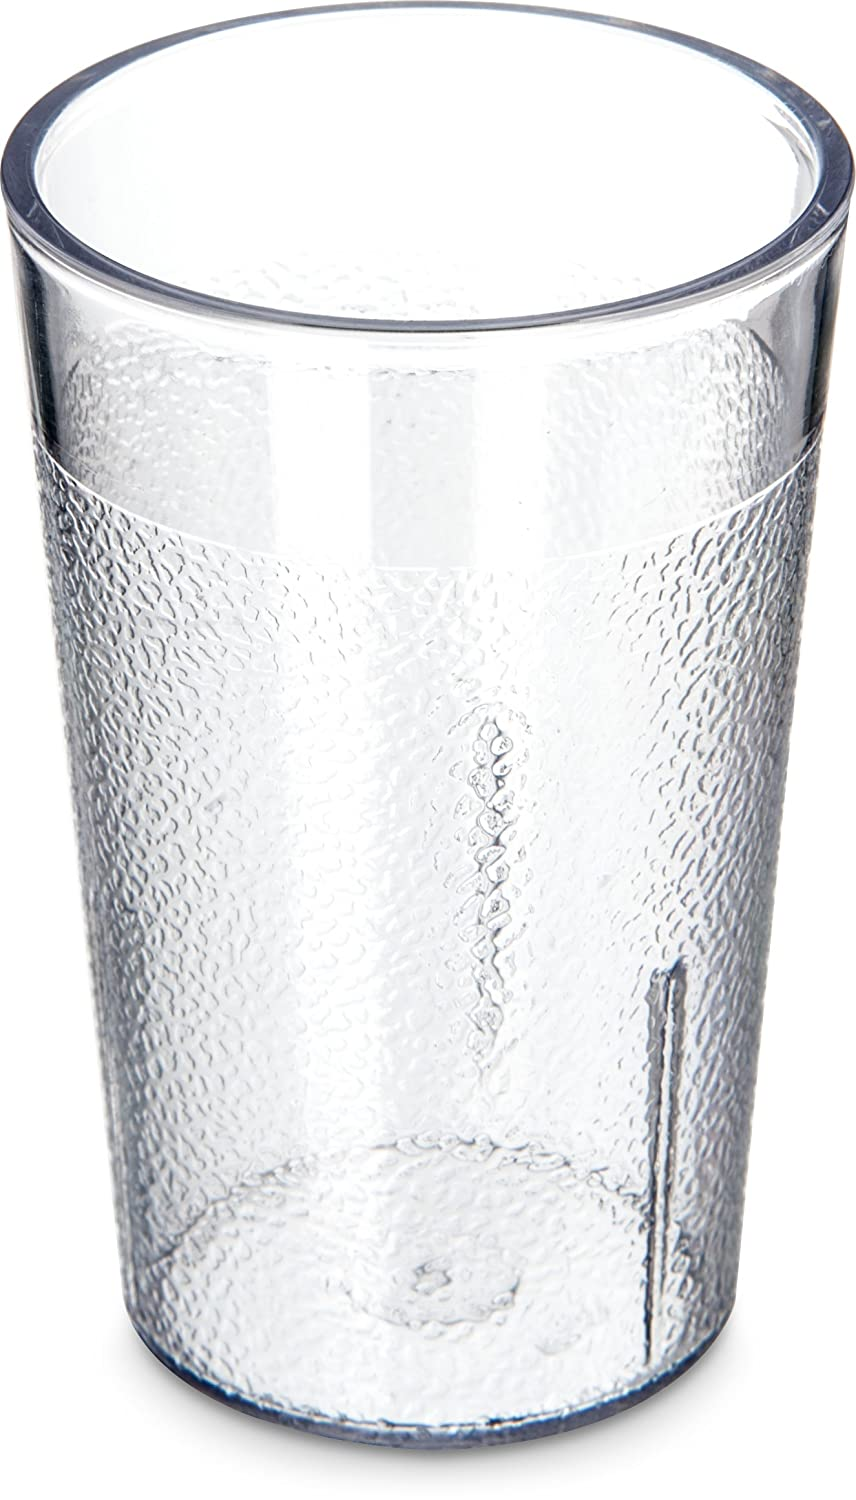 Carlisle 5501-8107 BPA Free Plastic Stackable Tumbler, 5 oz., Clear (Pack of 6)